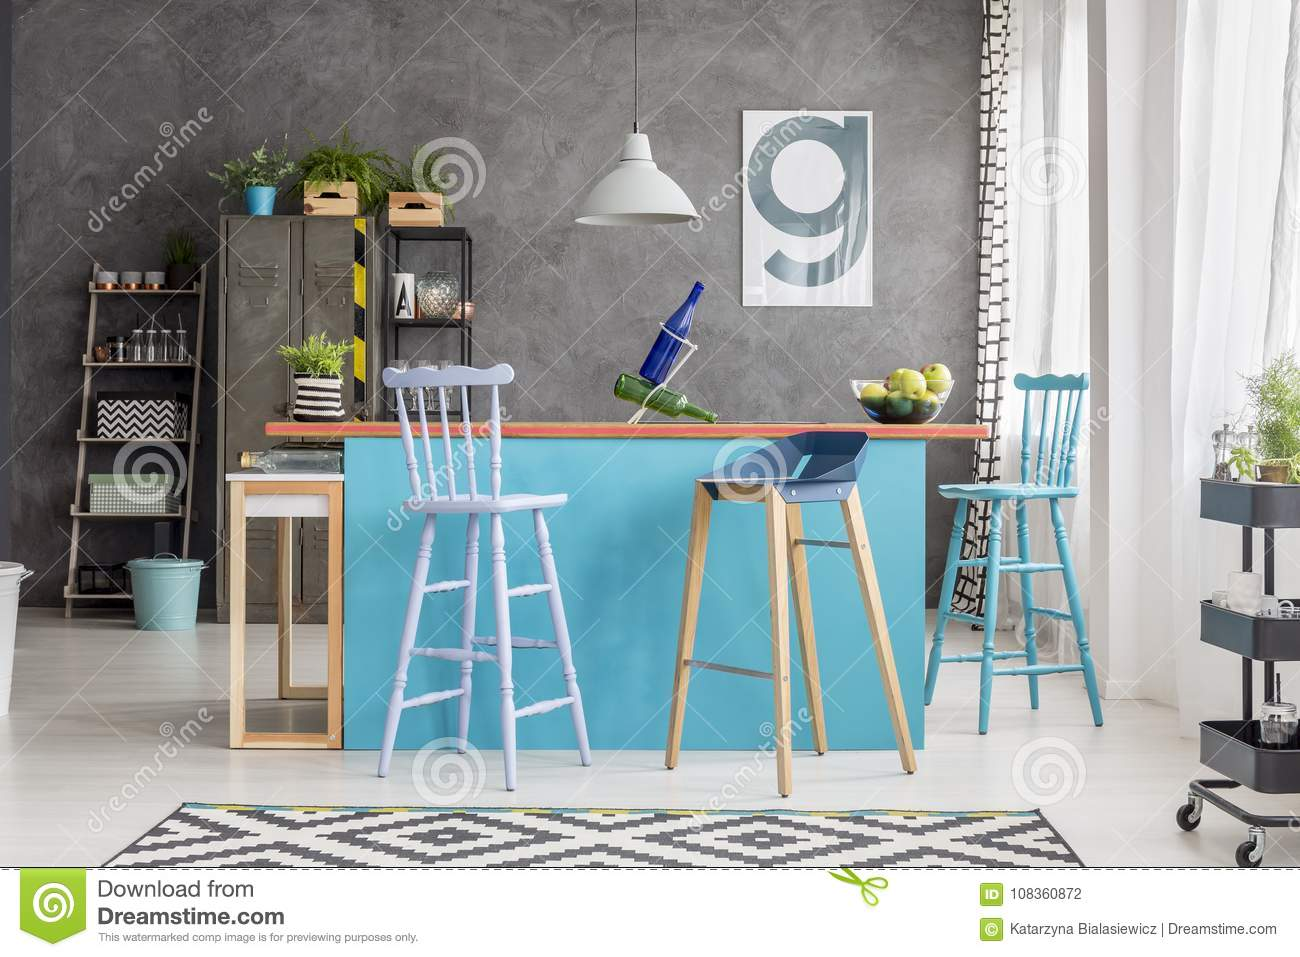 Modern Kitchen Island In Apartment Stock Photo - Image of green ...